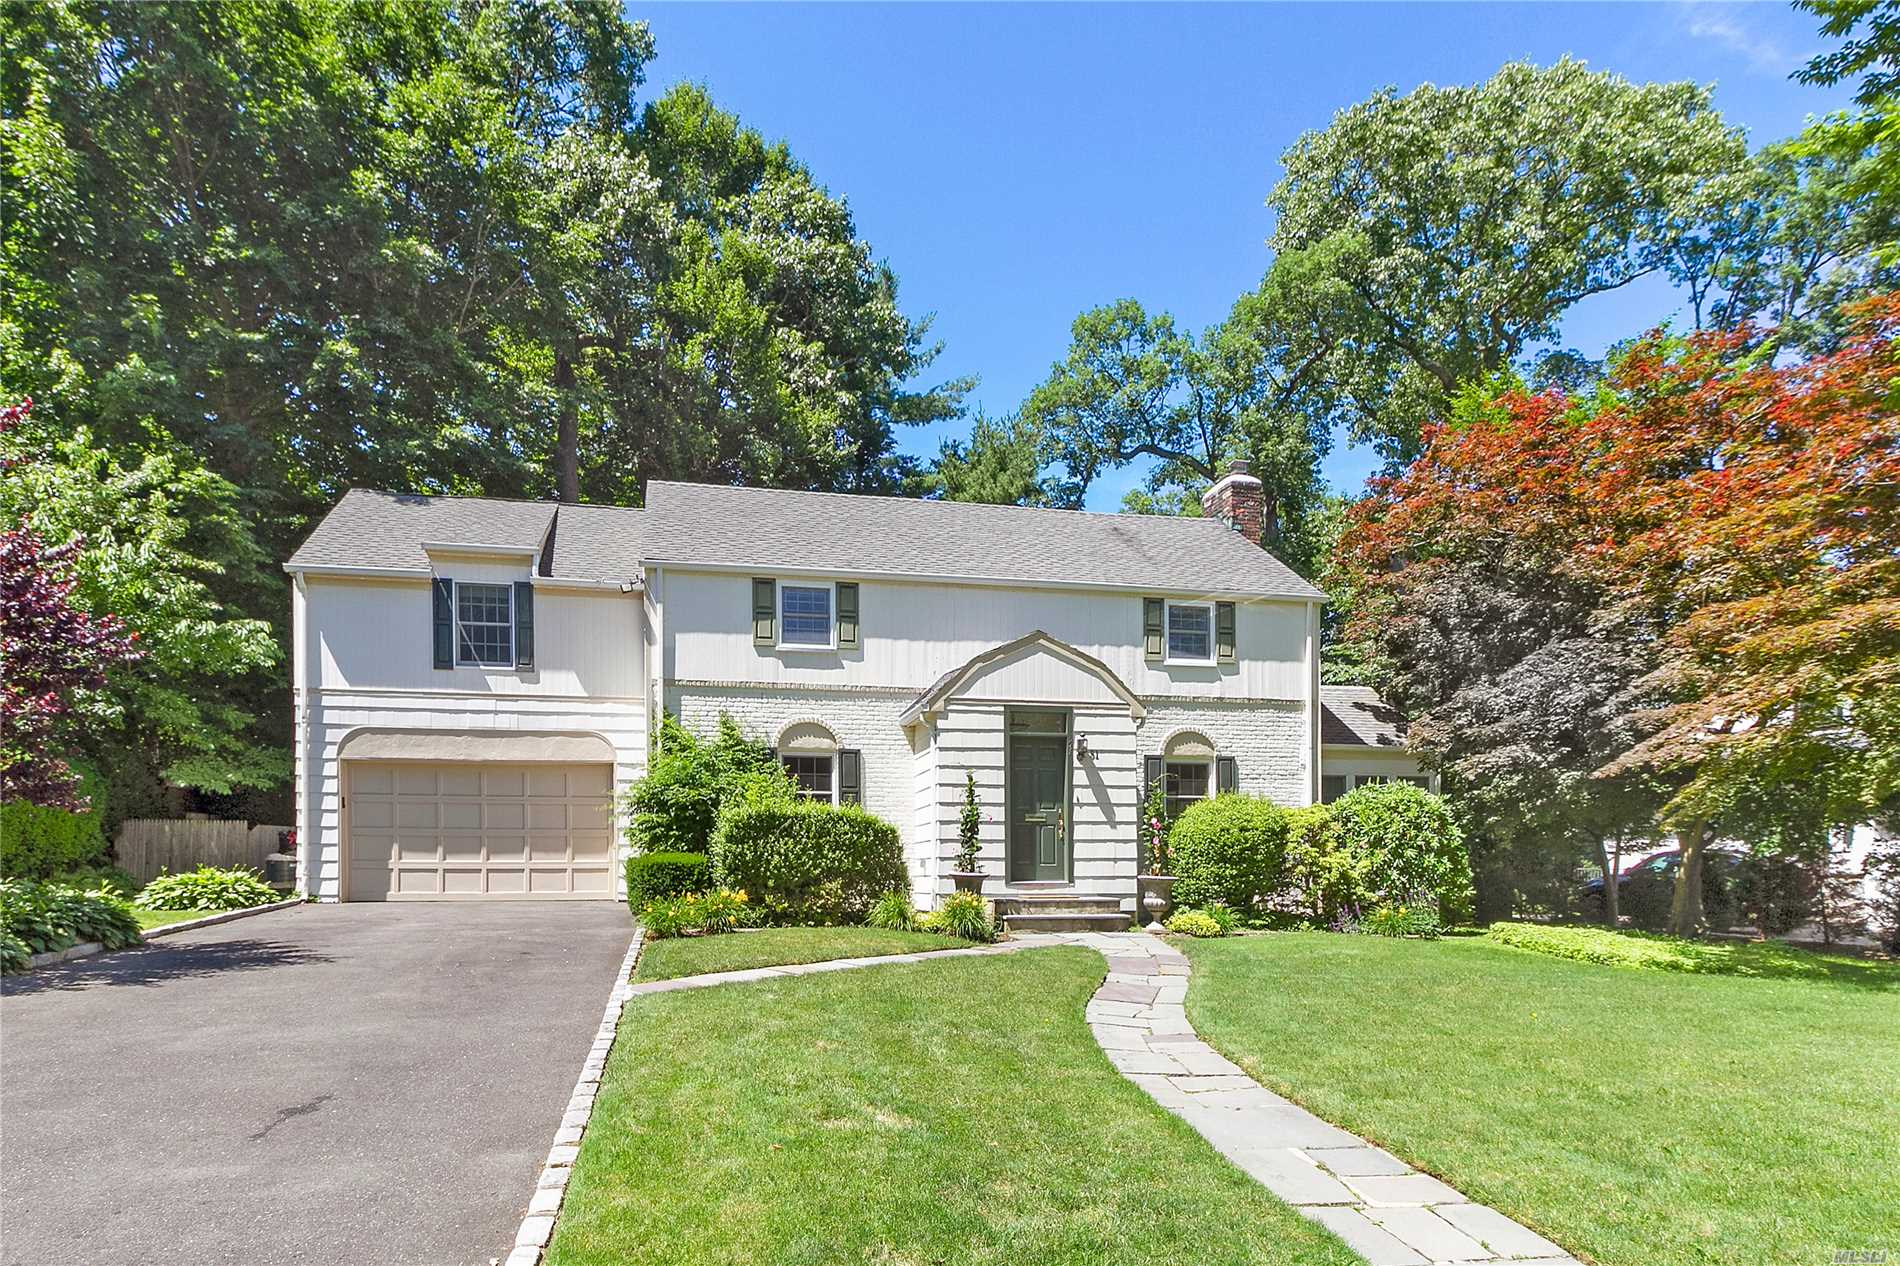 Expanded East Hills Colonial in the Heart of Norgate. This 5 Bedroom Home Features A Fabulous Master En-Suite w/ His and Hers Walk-in Closets and Vaulted Ceiling, 2 Bedrooms W/ Jack And Jill Bath, 2 Add'l Bedrooms & 1 Add'l Bath all up. Bright Windowed Entry, Renovated Kitchen W/ Custom Cabinets, Sun-filled Office, Large Family Room W/ French Doors Leading To A Lush Backyard. Custom Closets, Radiant Floors, Gas Cooking, Full House Gas Generator (2013), Low Taxes, East Hills Park & Roslyn SD!